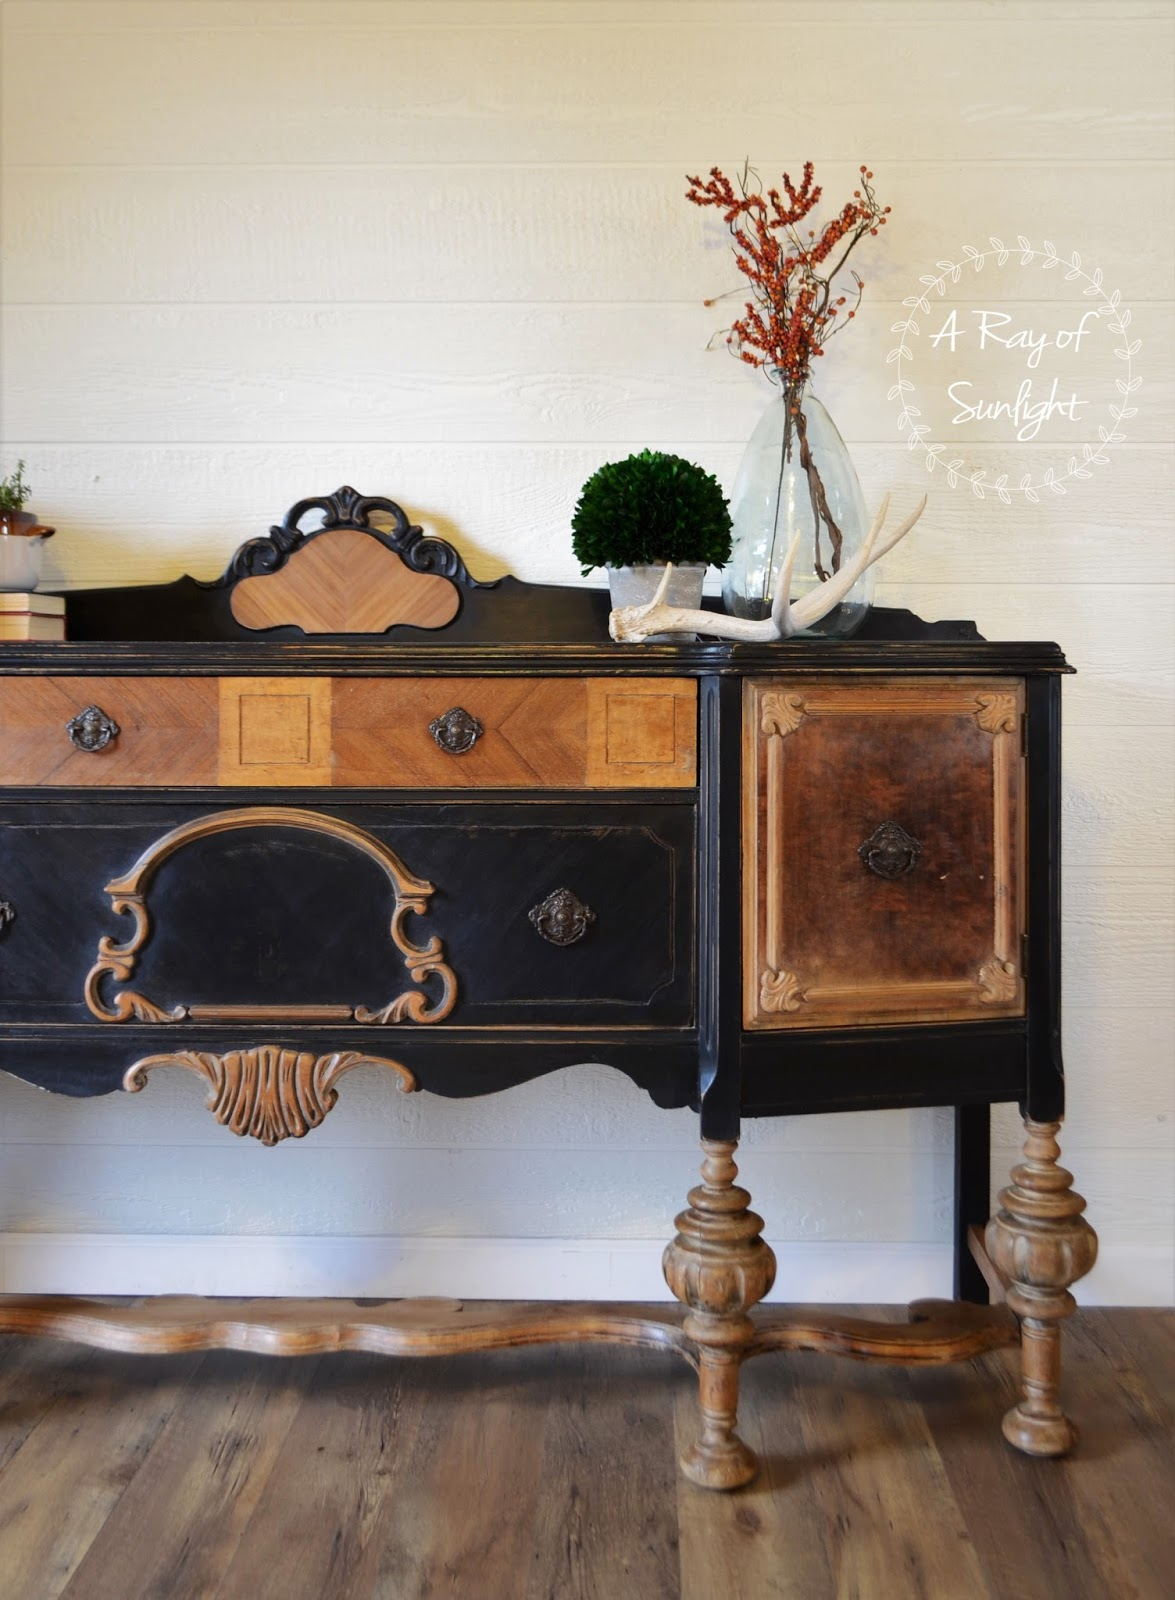 This thrift antique buffet was ready for the dump. The veneer was peeling, chipping and bubbling, the finish was worn, and the backsplash needed repair. So we repaired the veneer, removed the veneer, filled in some missing veneer with bondo and stripped the finish down to raw wood. I love the natural wood and black paint together! By A Ray of Sunlight #furnituremakeover #furniturerepair